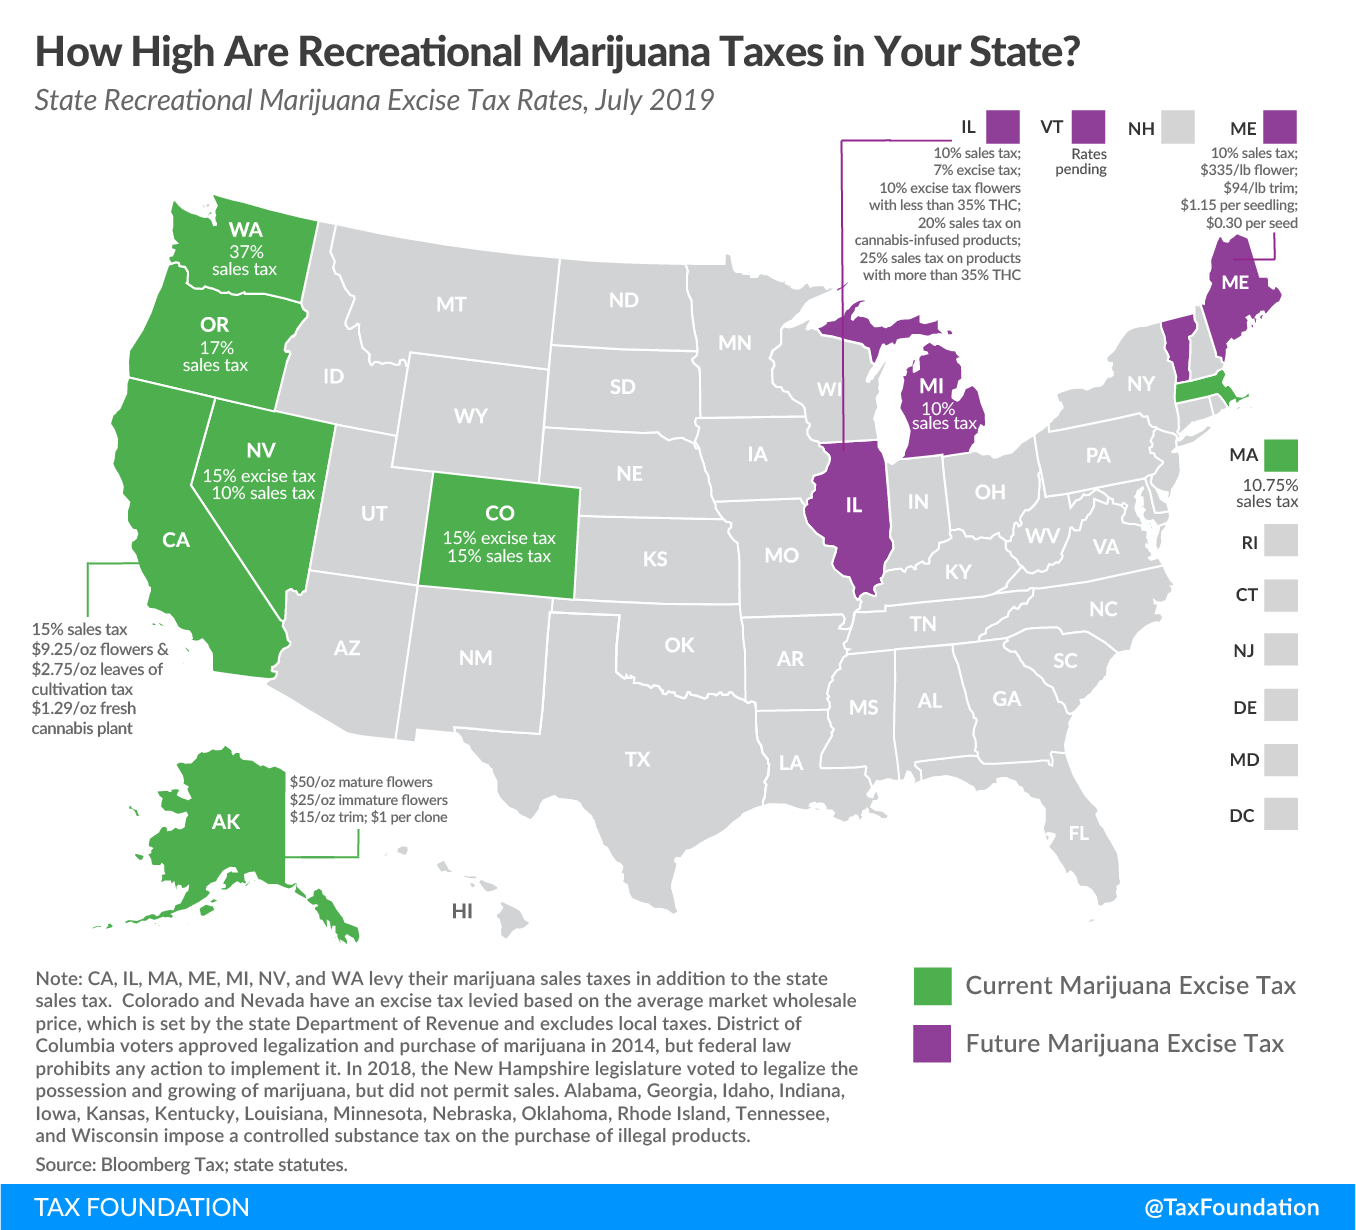 Pennsylvania legalize marijuana, Pennsylvania recreational marijuana tax, New Mexico legalize marijuana, New Mexico recreational marijuana tax, states taxing marijuana